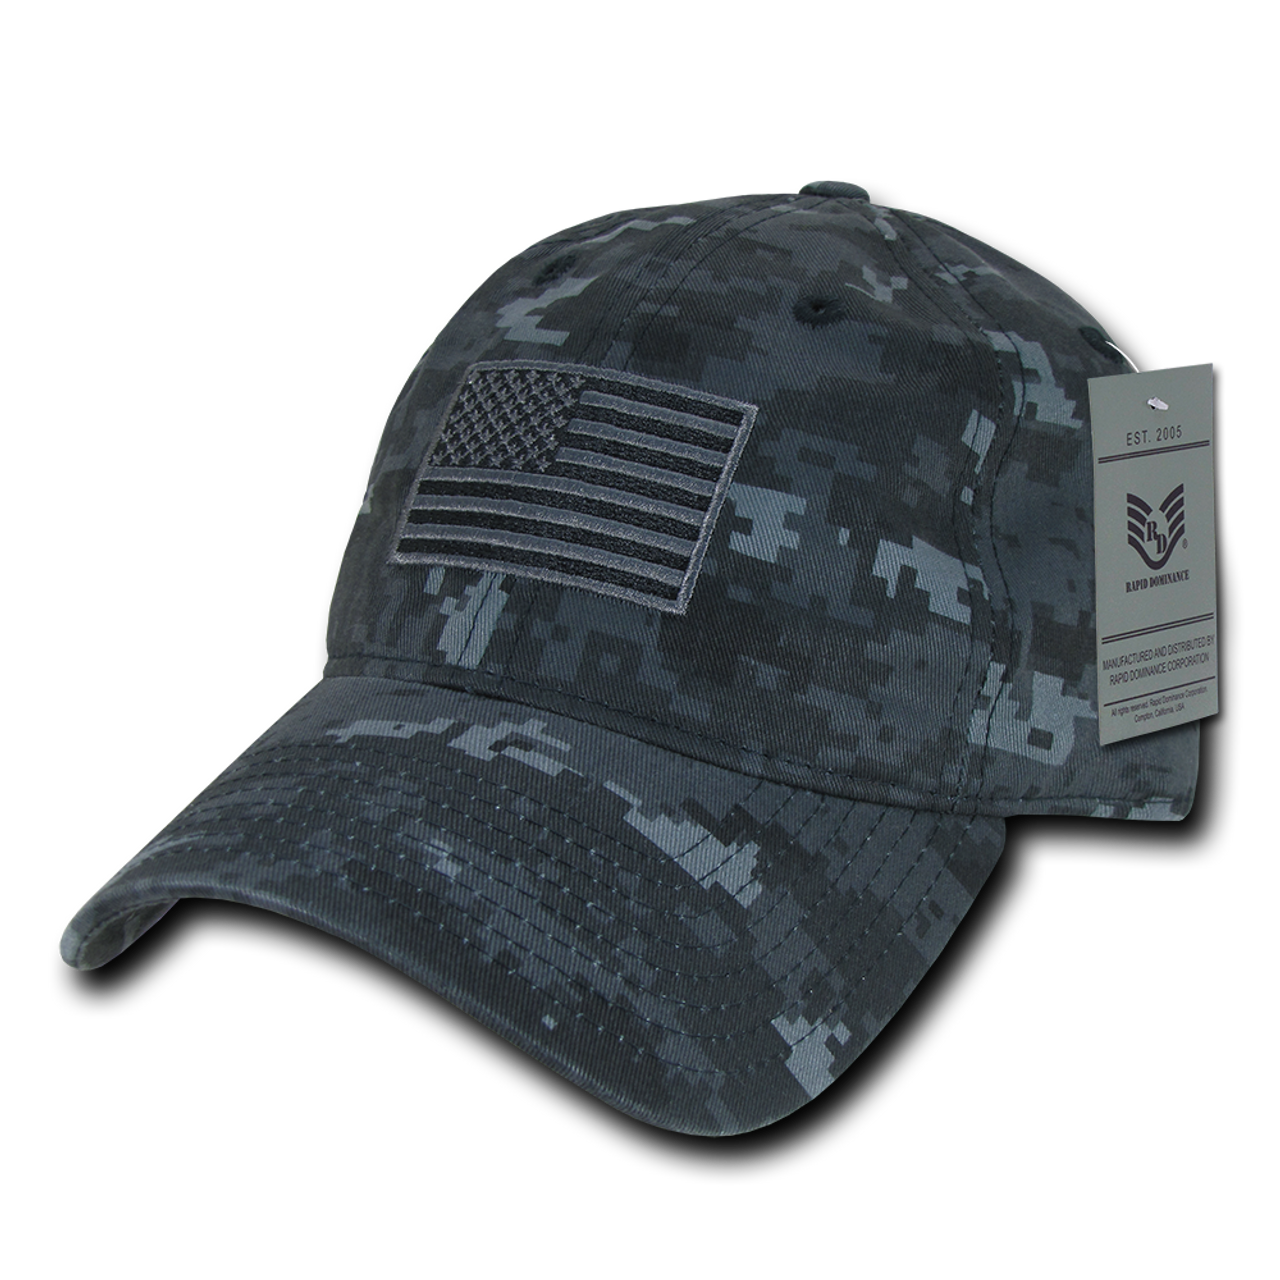 84dbcec70145e9 A03 - Tactical Operator Cap Tonal US Flag Navy Blue Digital Camouflage  Relaxed ...